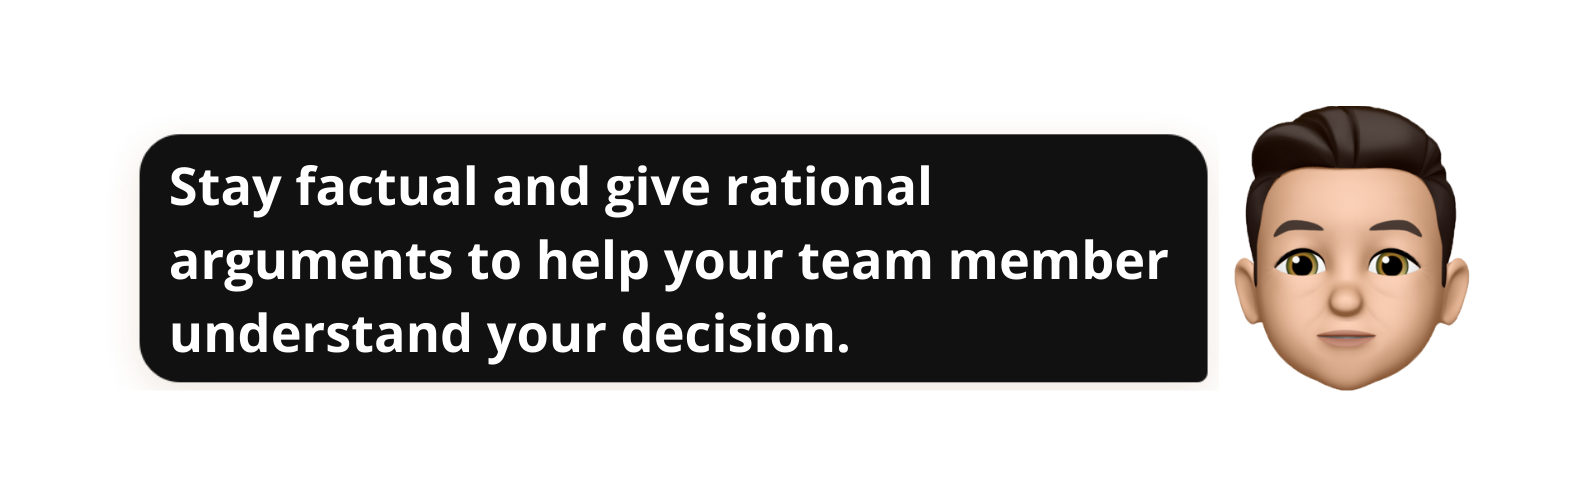 Stay factual and give rational arguments to help your team member understand your decision.- Popwork